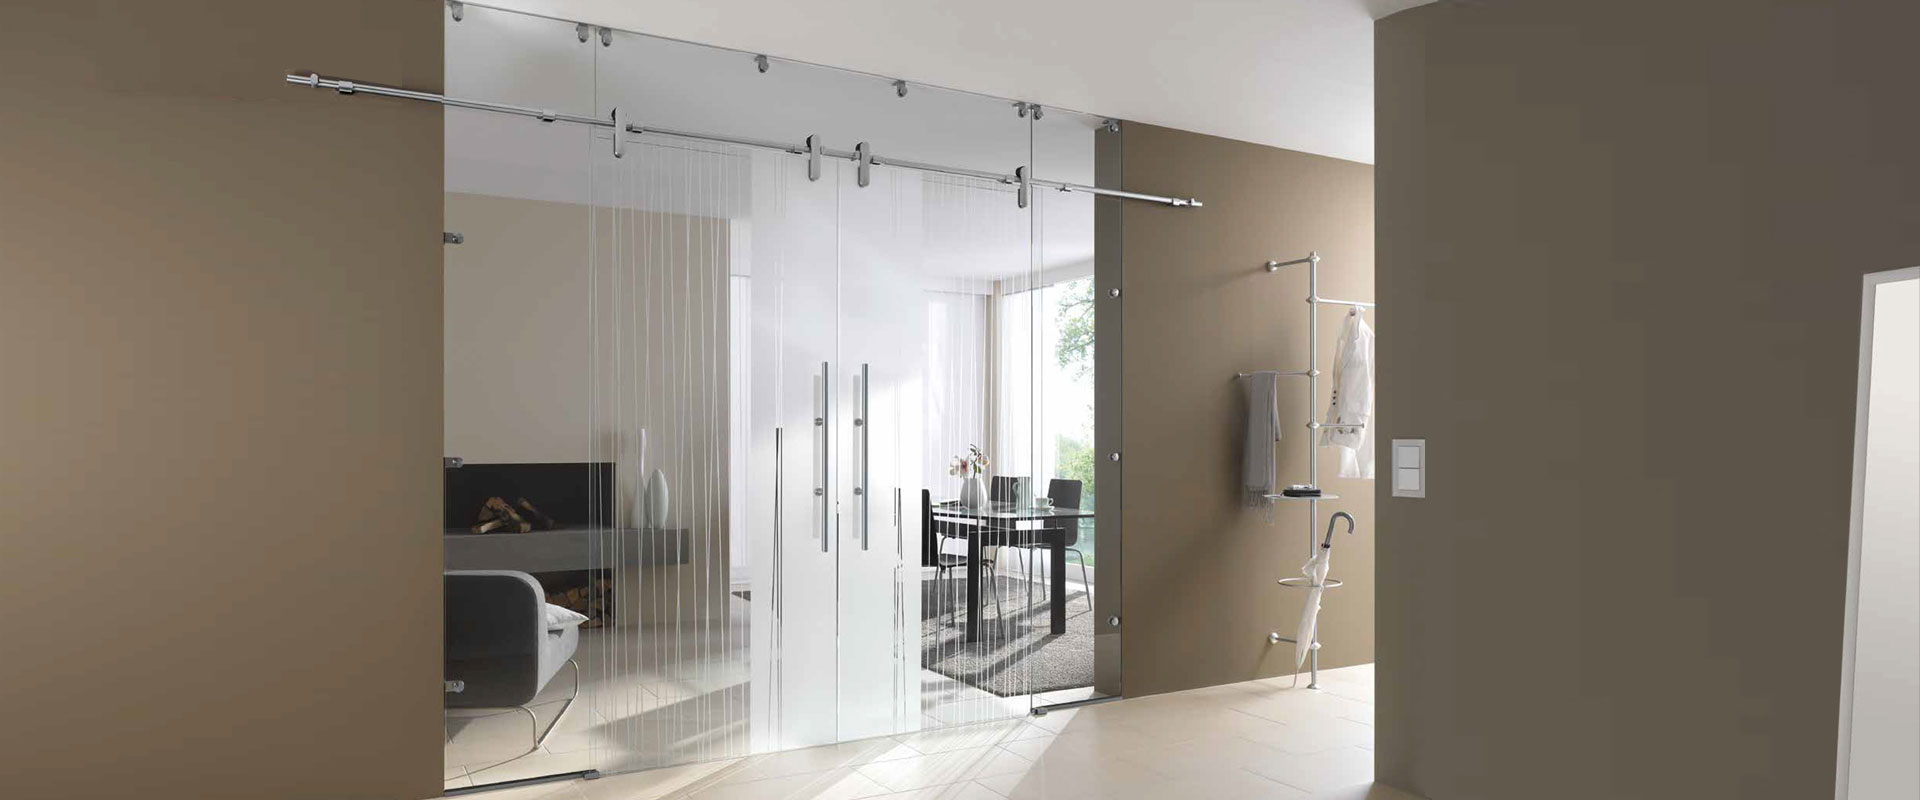 Luxury Hinged Glass Doors Sliding Glass Partitions